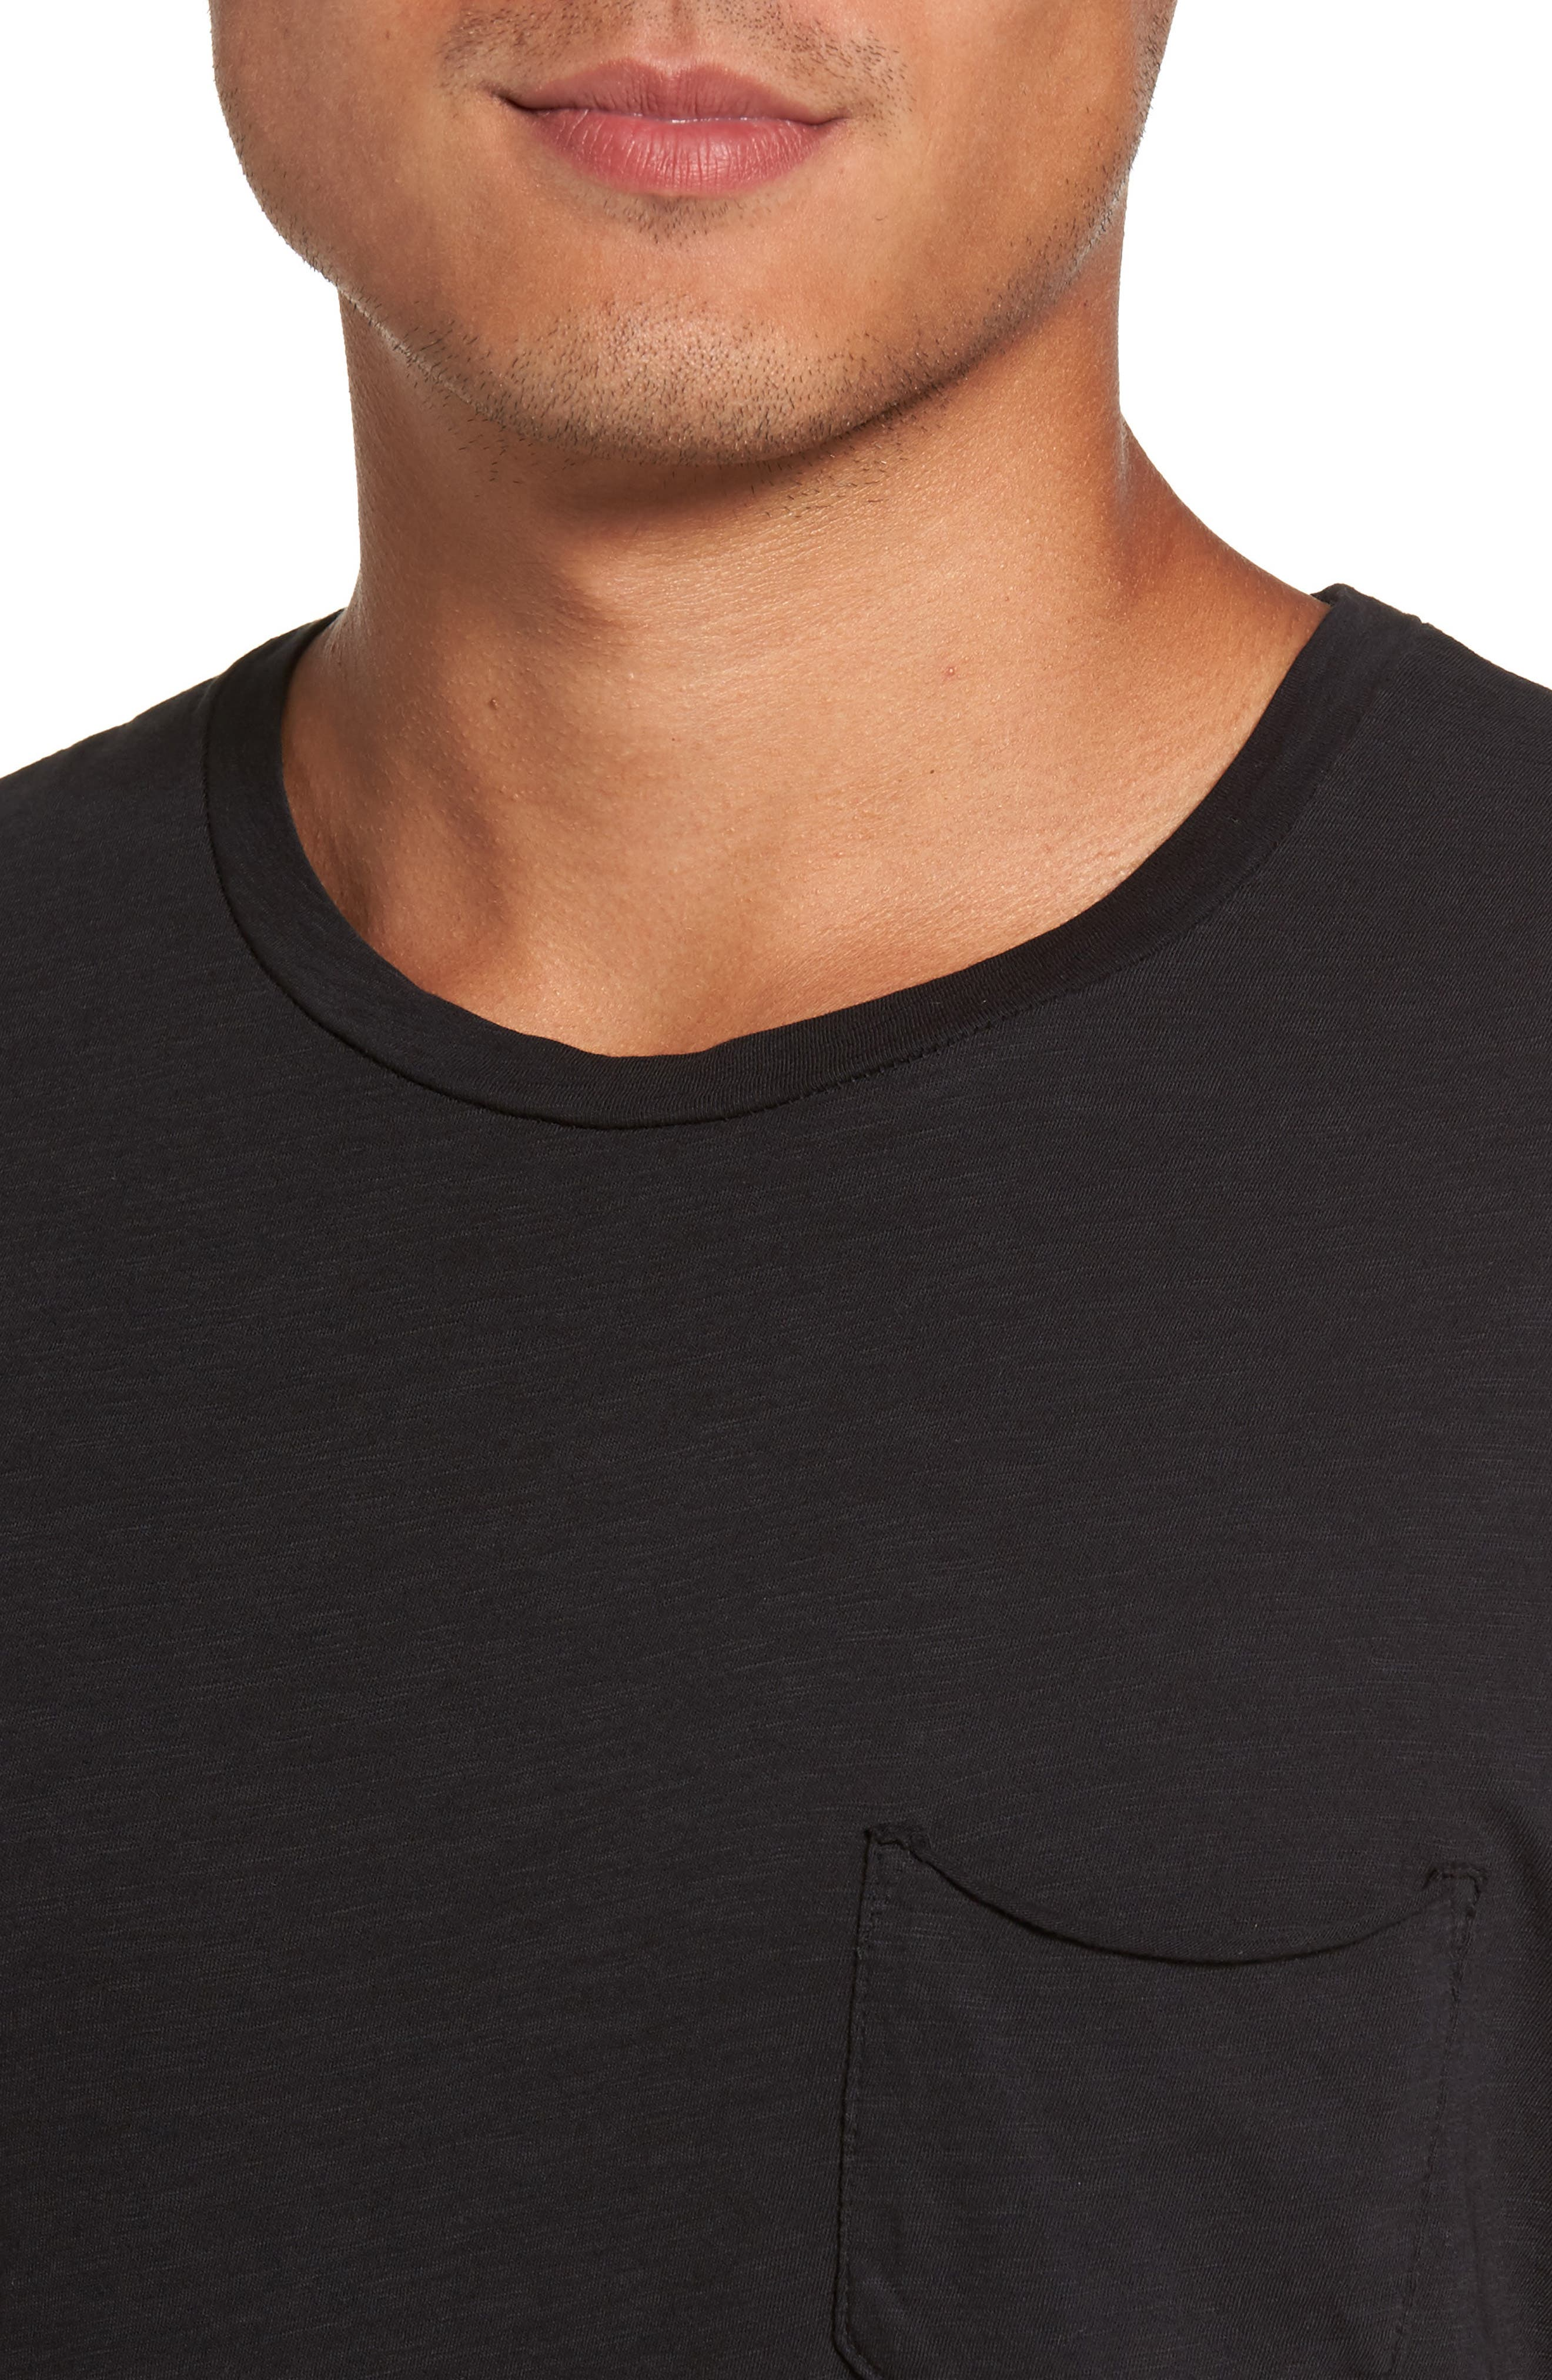 Chase Classic Crewneck T-Shirt,                             Alternate thumbnail 4, color,                             003